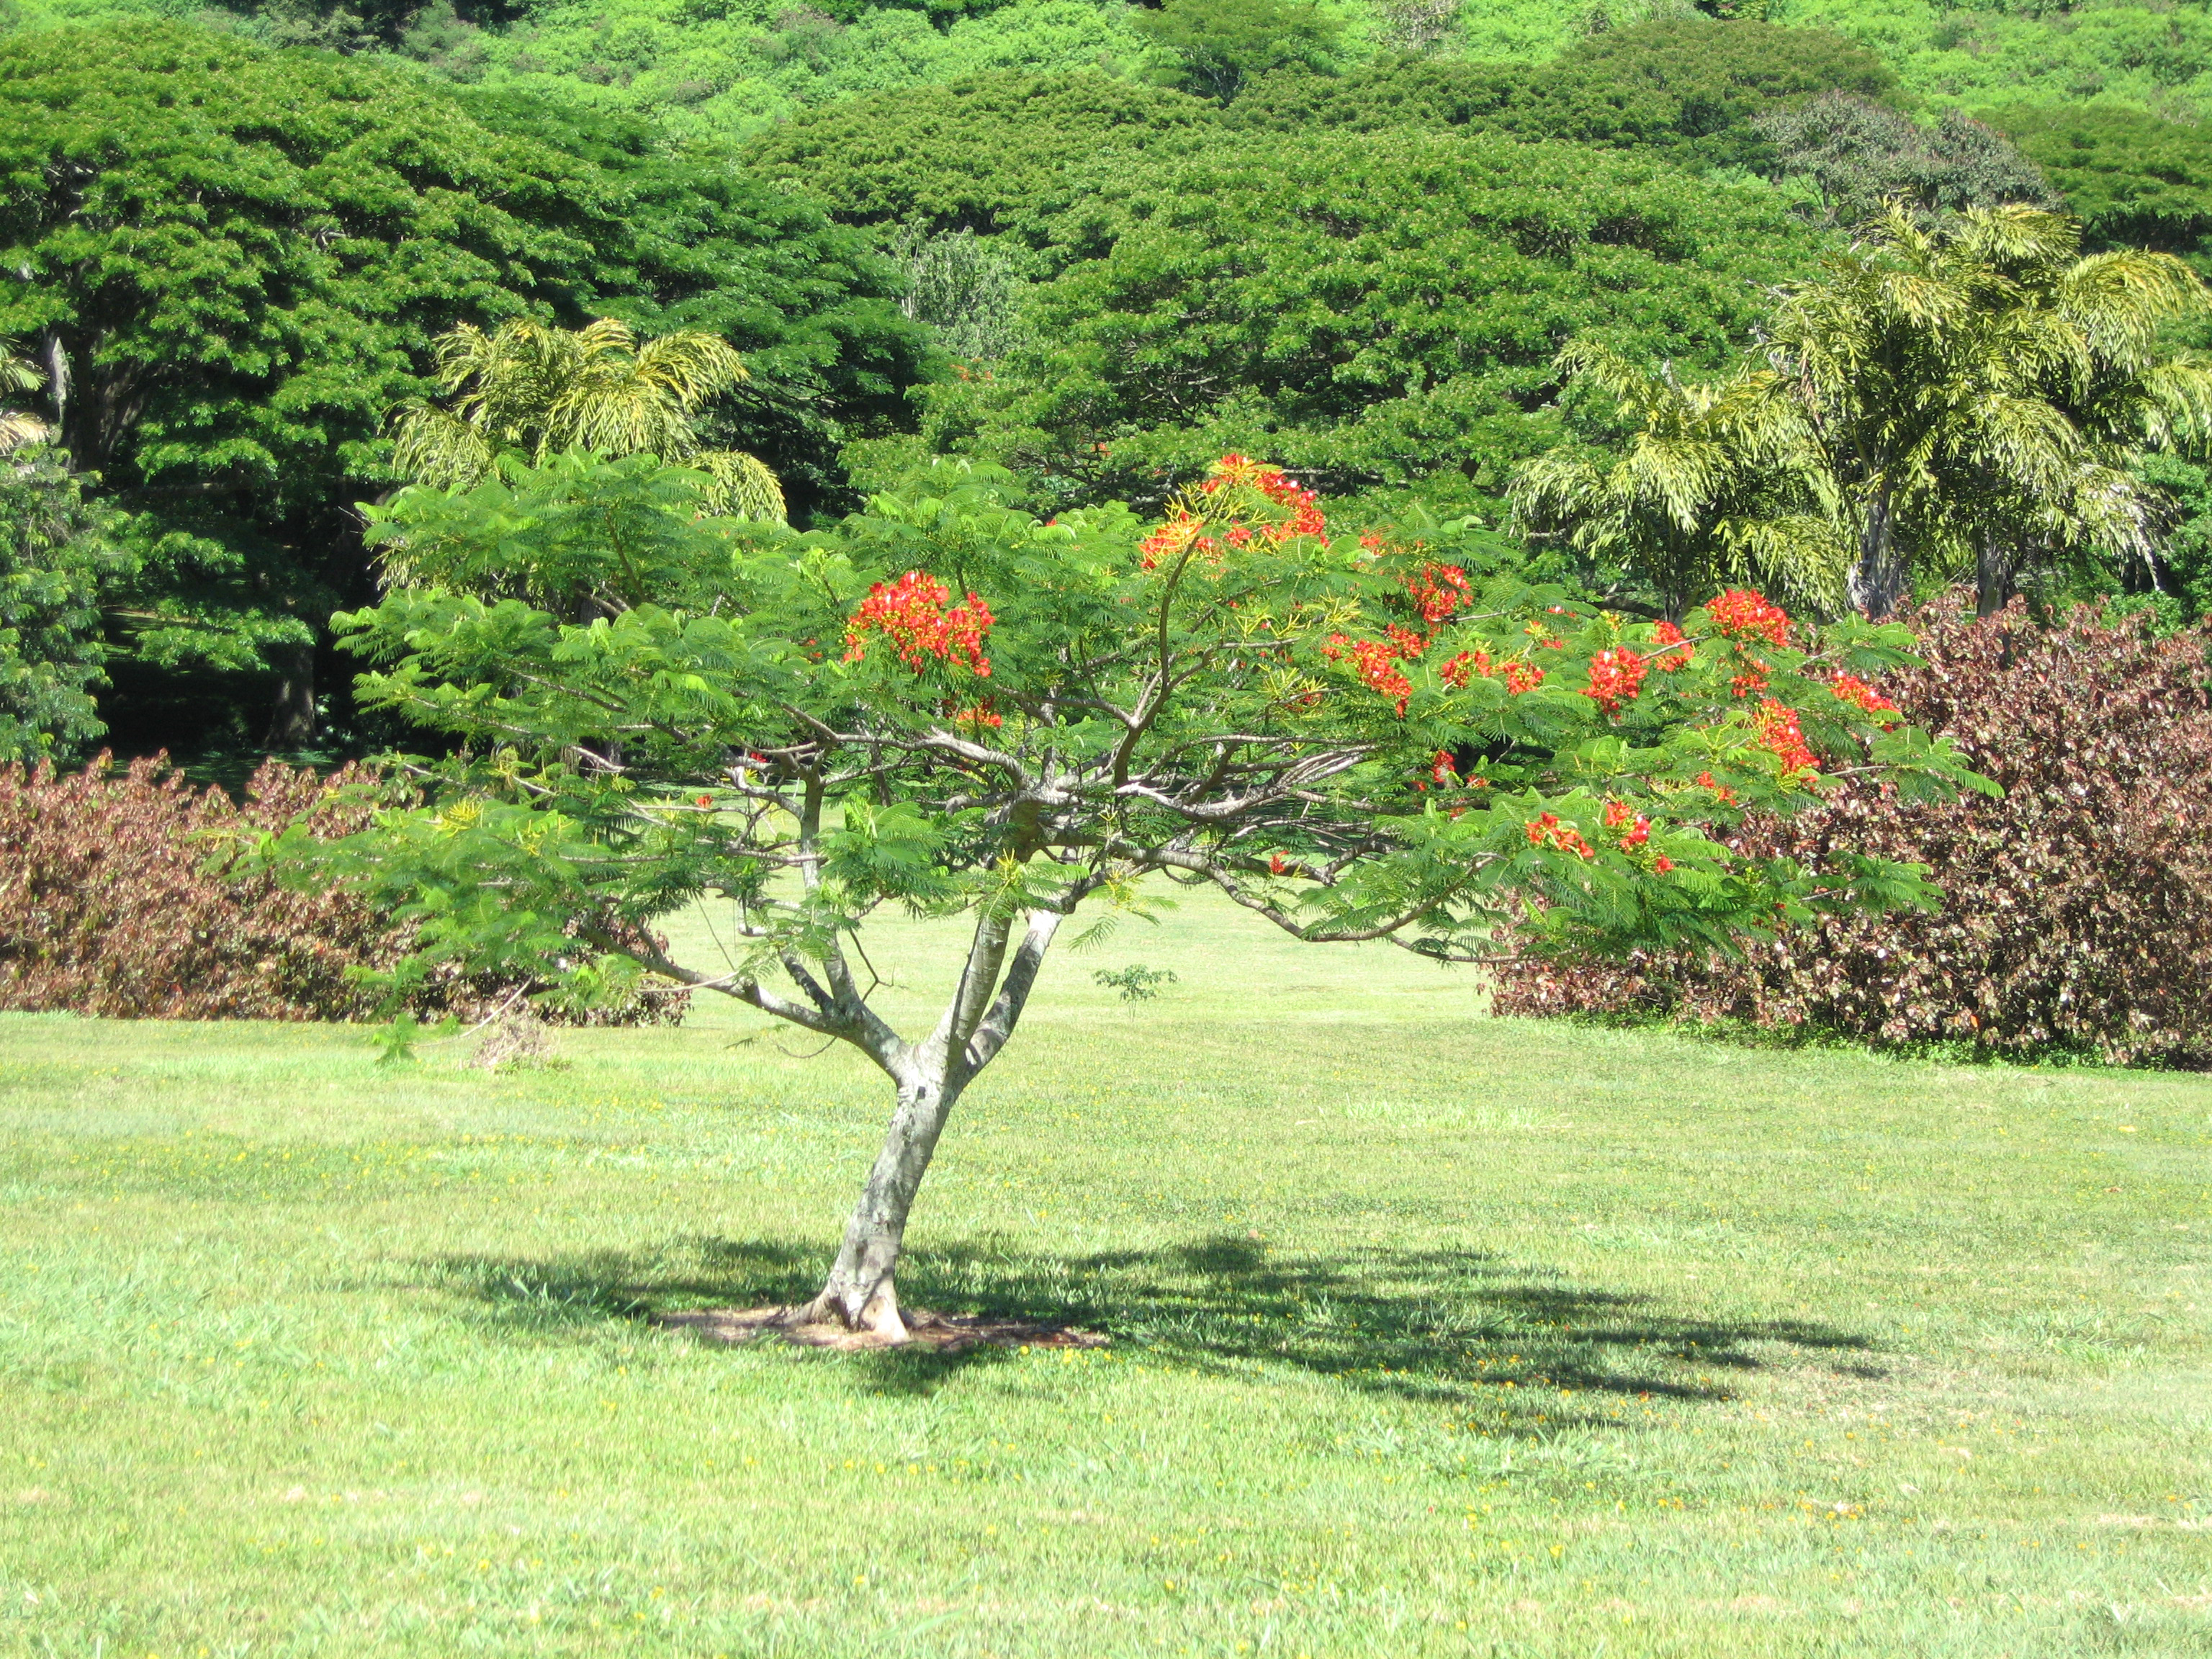 Delonix regia   - Habit, young tree